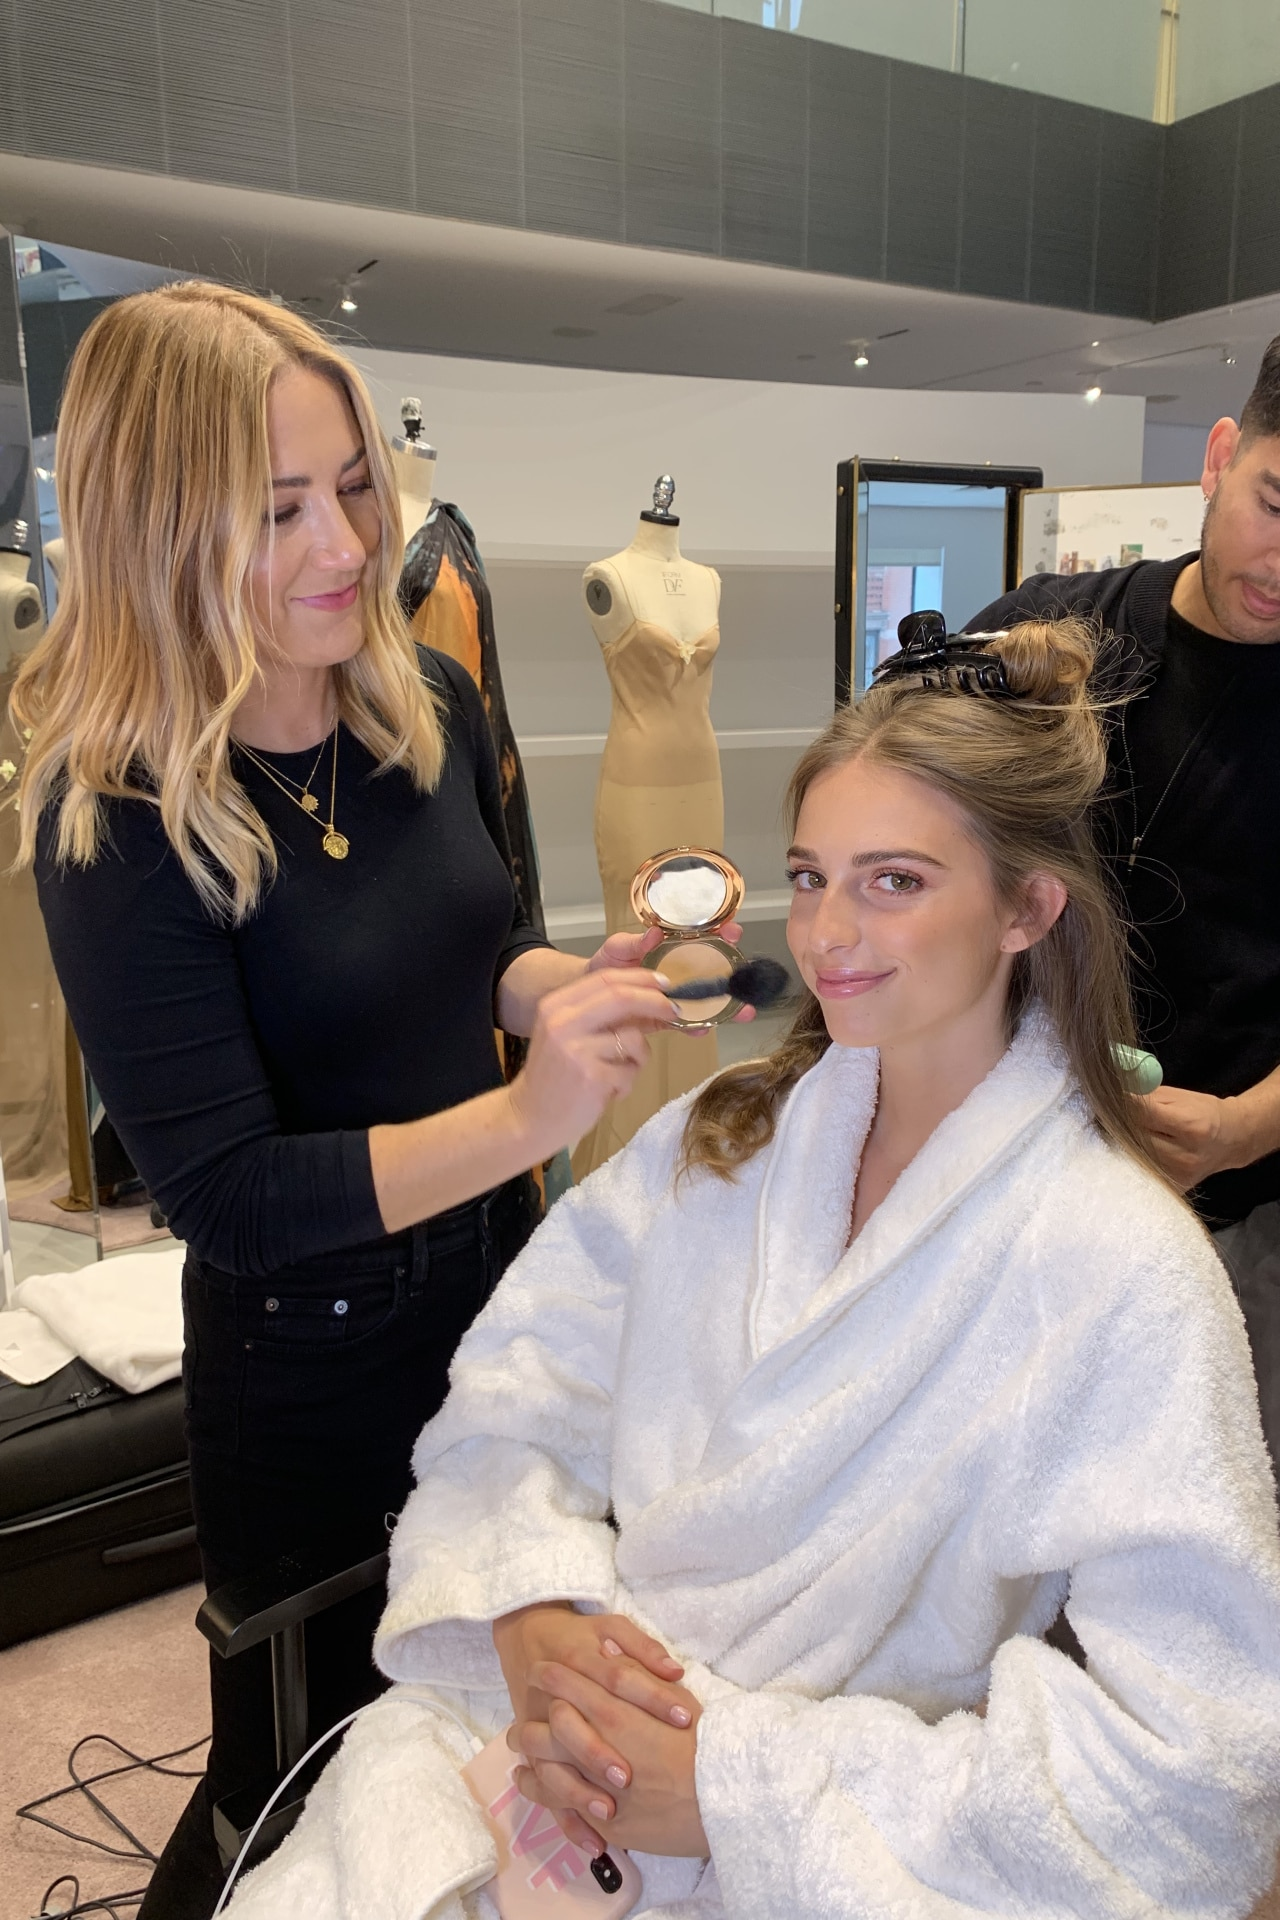 Talita von Fürstenberg gets ready for the 2019 Met Gala. Image credit: supplied